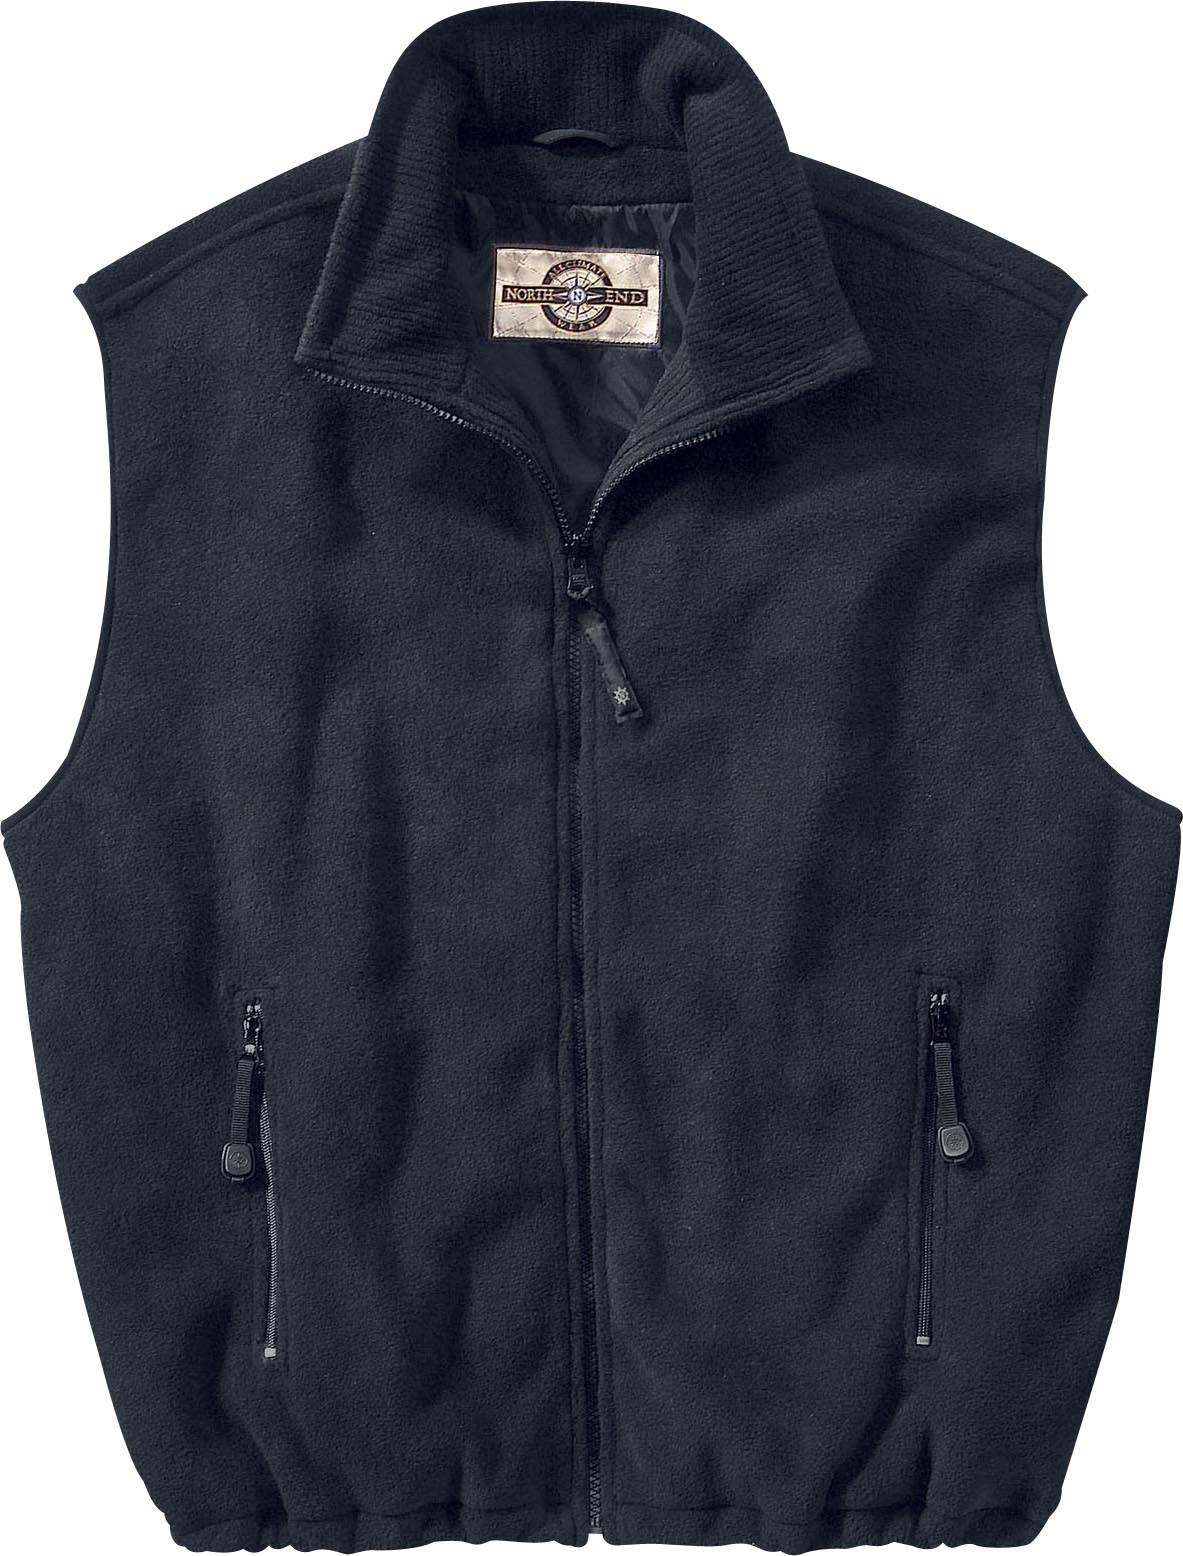 Ash City Vests 88034 - Men's Interactive Fleece Vest